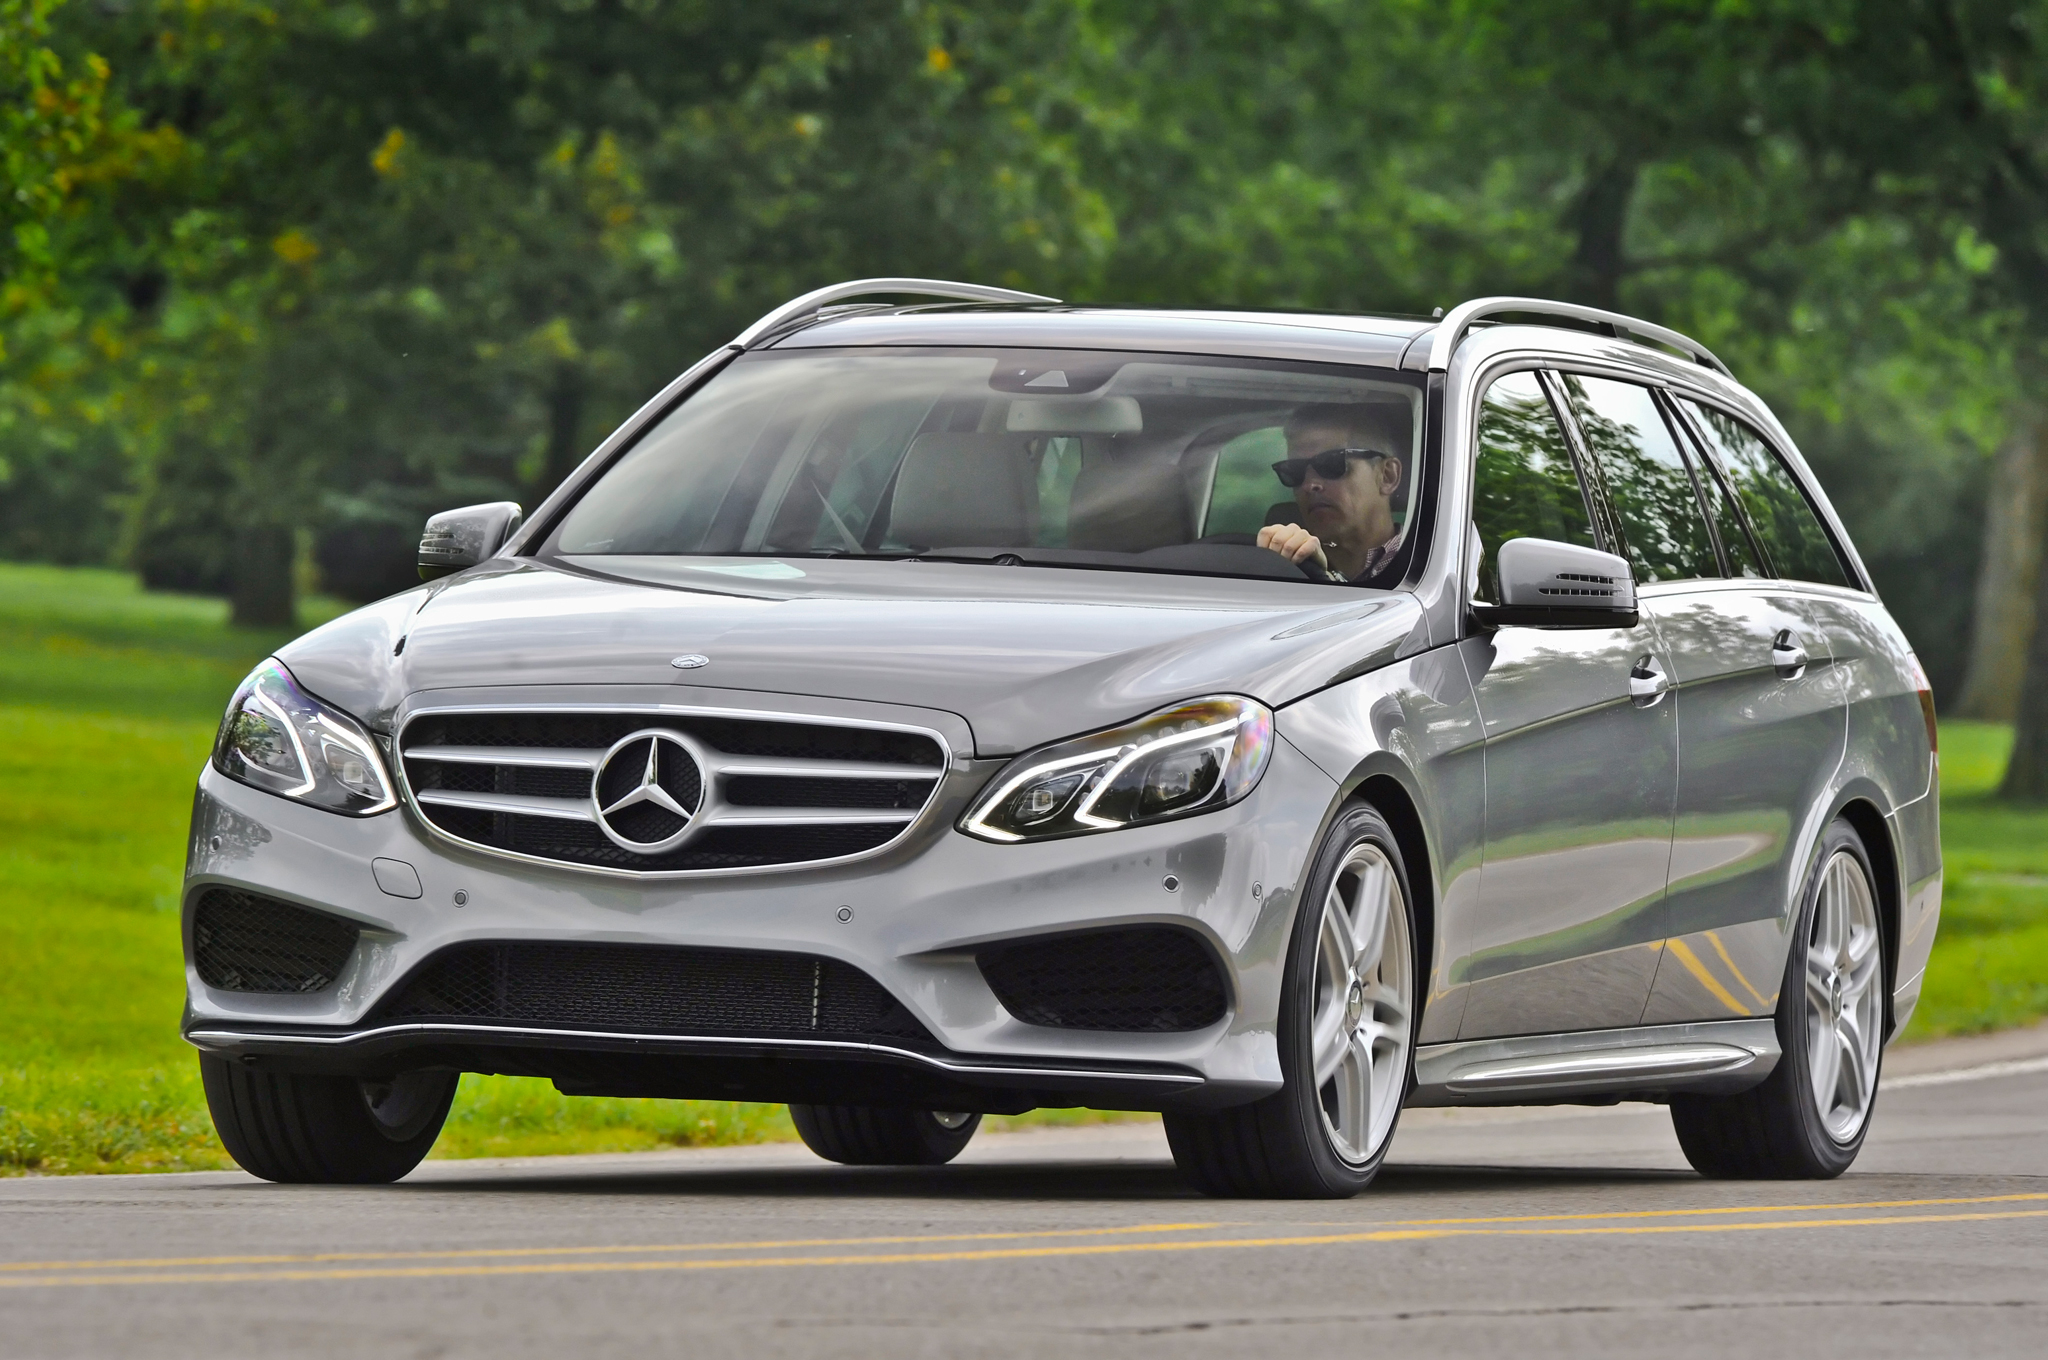 hight resolution of 2014 mercedes benz e350 4matic wagon first drive